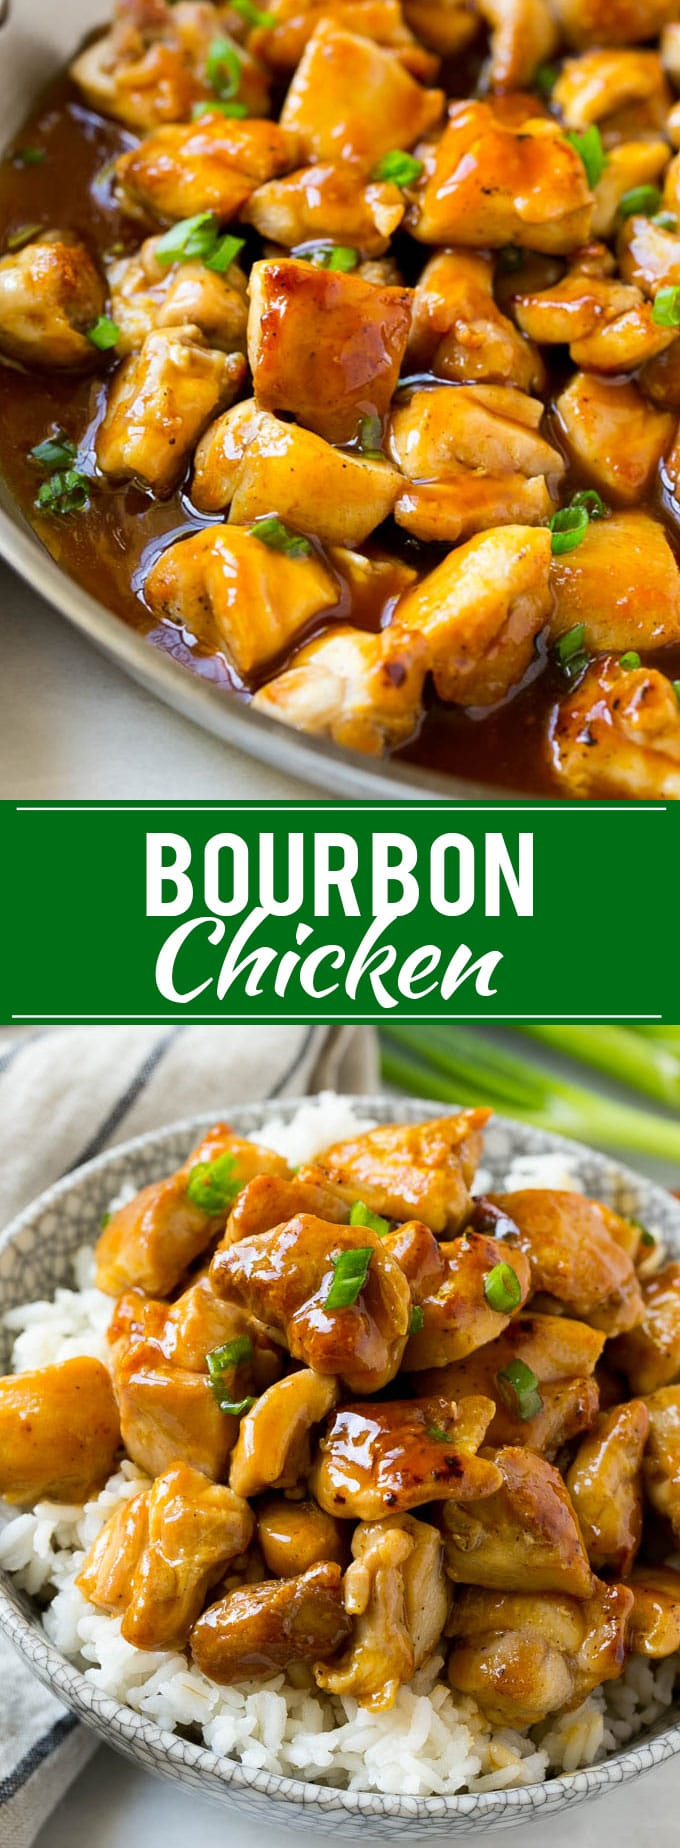 Bourbon Chicken | Sauteed Chicken | Chicken Stir Fry | Easy Chicken Recipe #chicken #dinner #dinneratthezoo